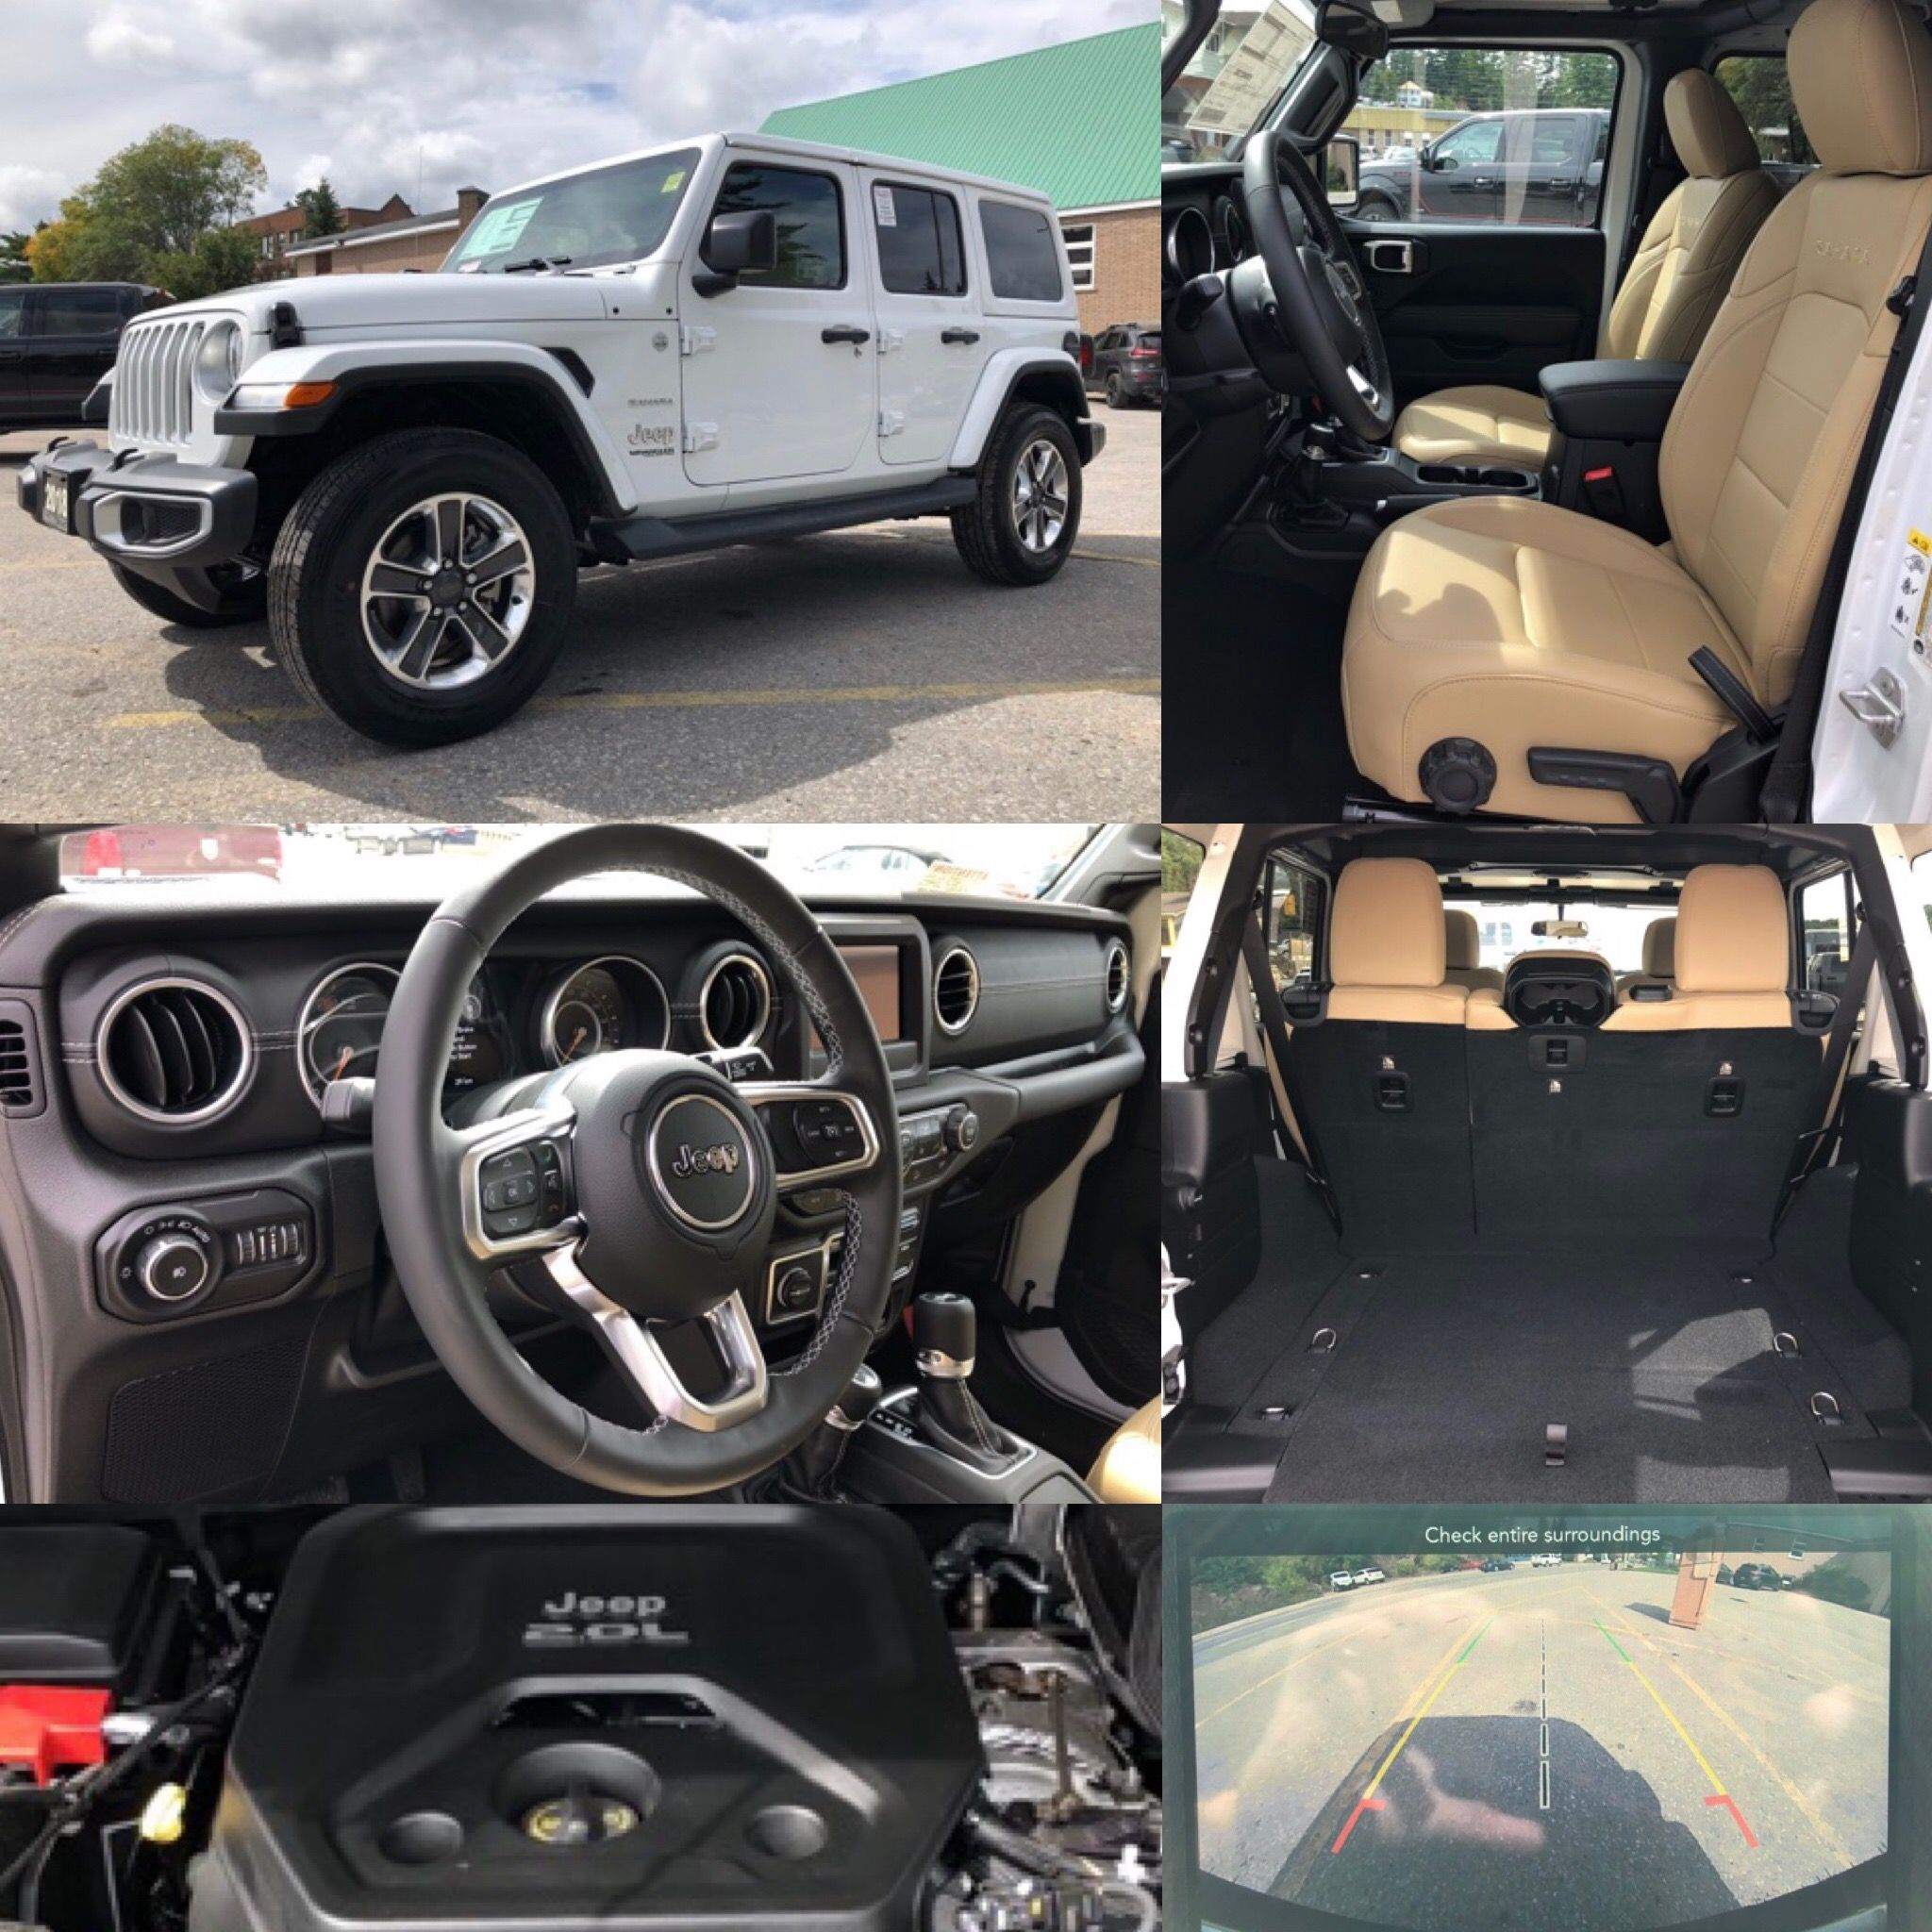 2018 Bright White Jeep All New Wrangler Unlimited Sahara 4x4